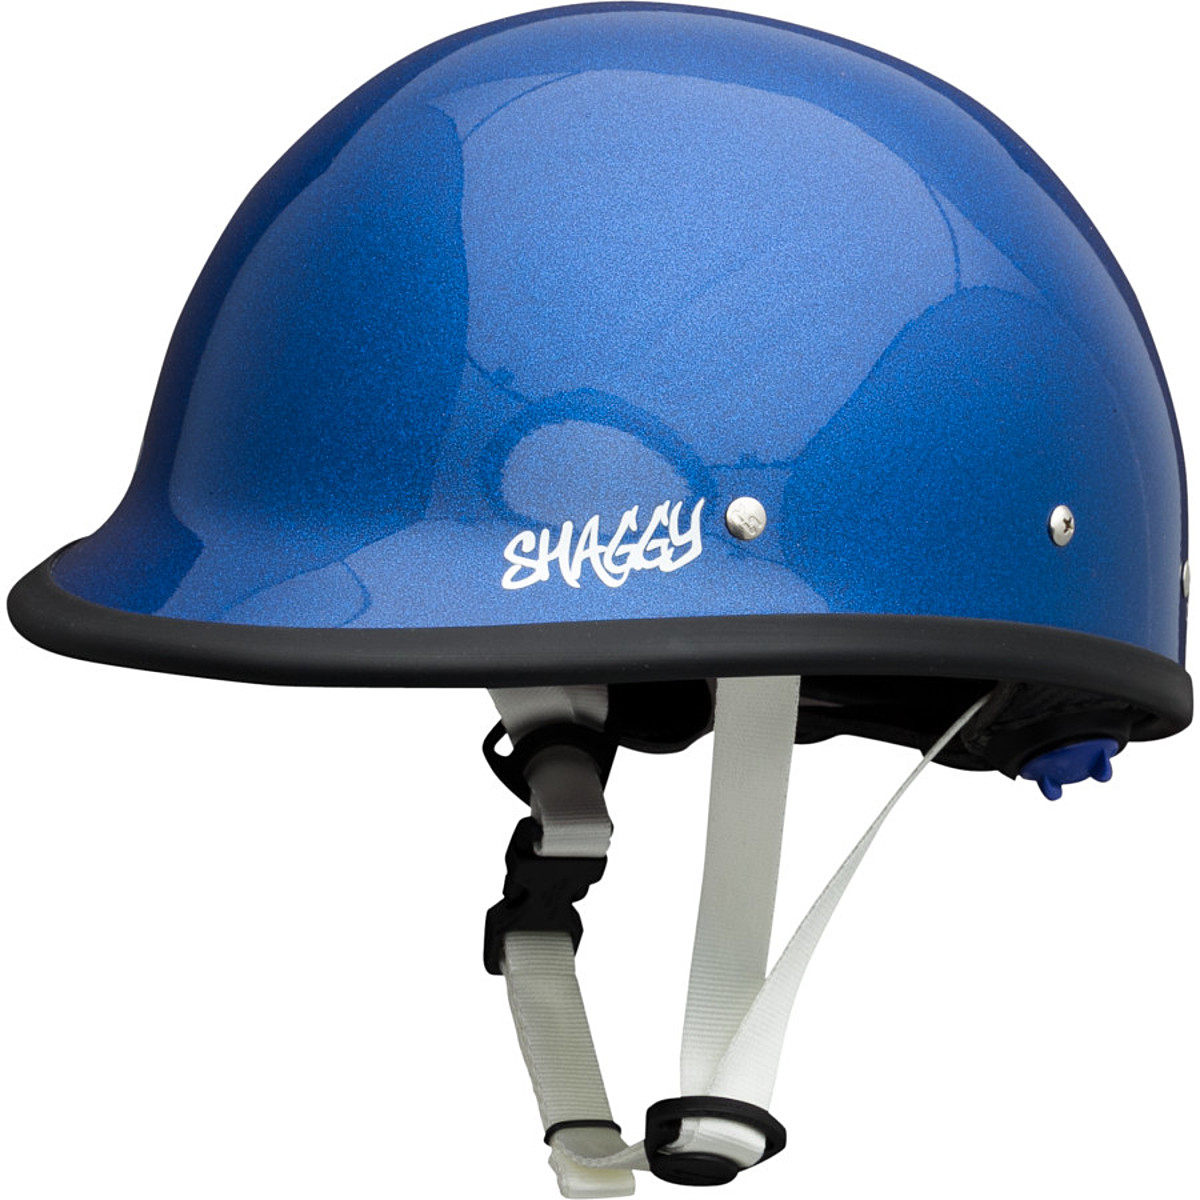 photo: Shred Ready Shaggy Helmet paddling helmet